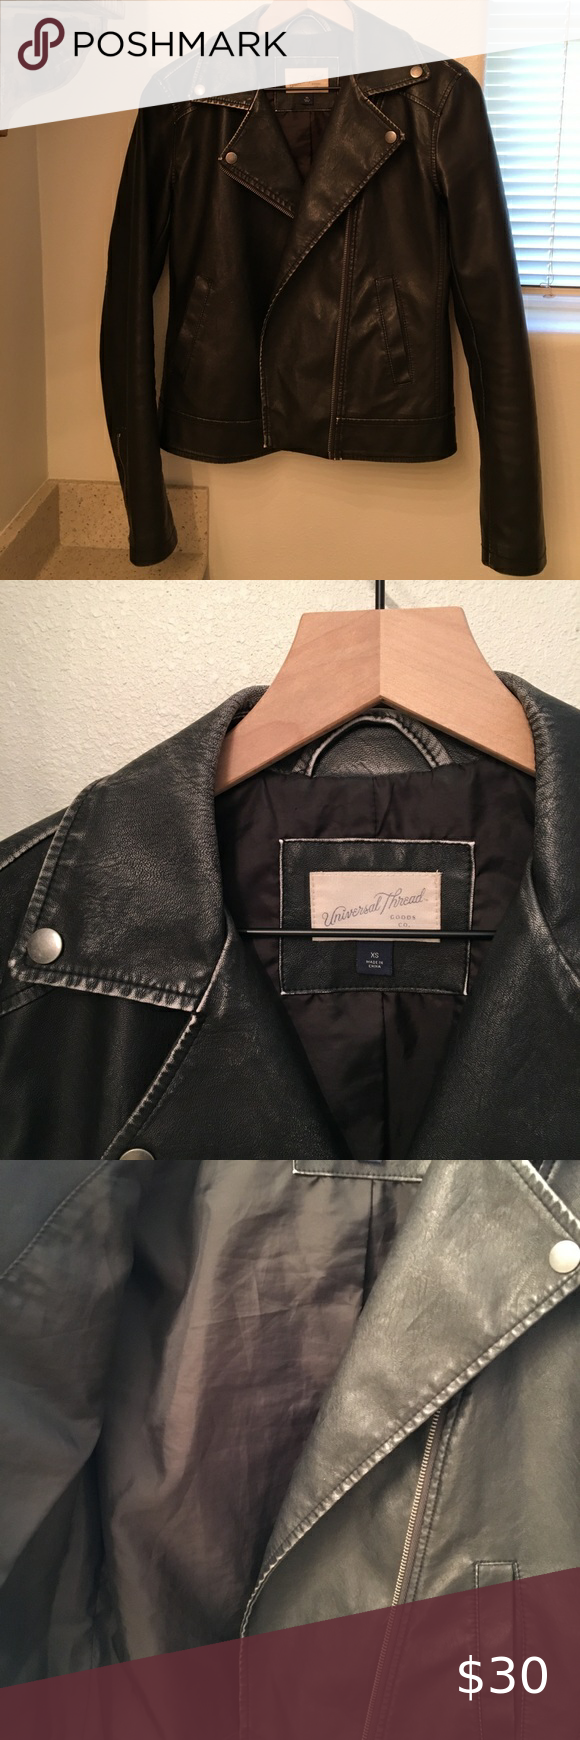 Universal Thread Faux Leather Jacket Leather Jacket Faux Leather Moto Jacket Faux Leather Jackets [ 1740 x 580 Pixel ]